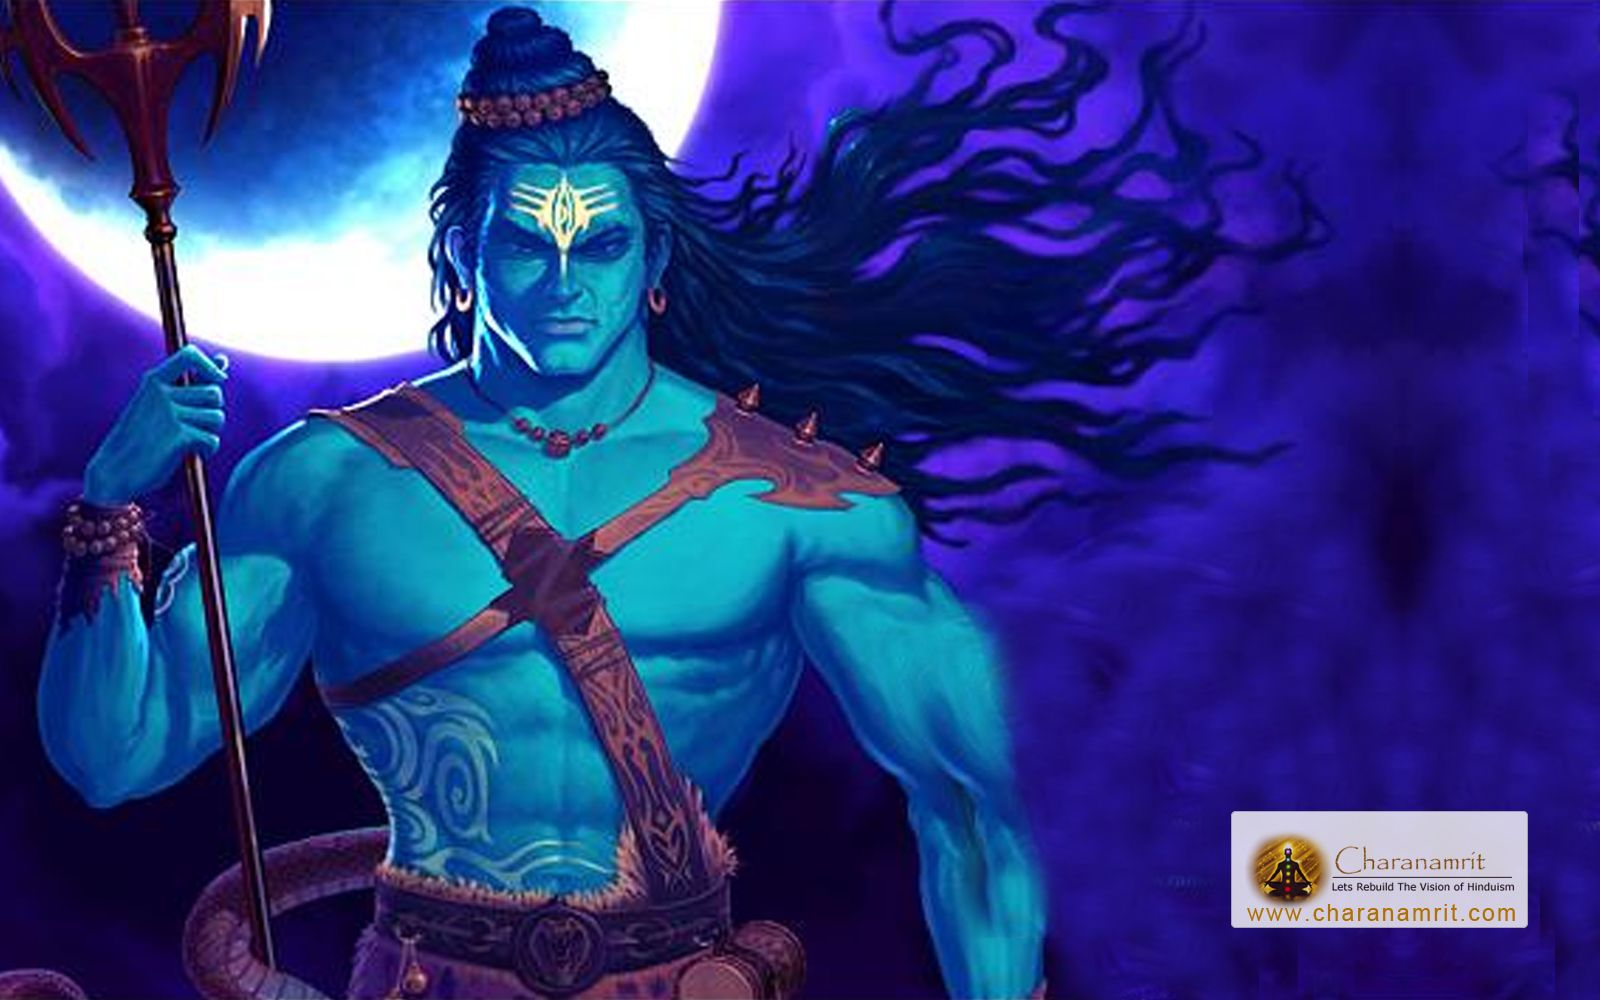 Angry lord shiva blue colour hd wallpaper for free download width